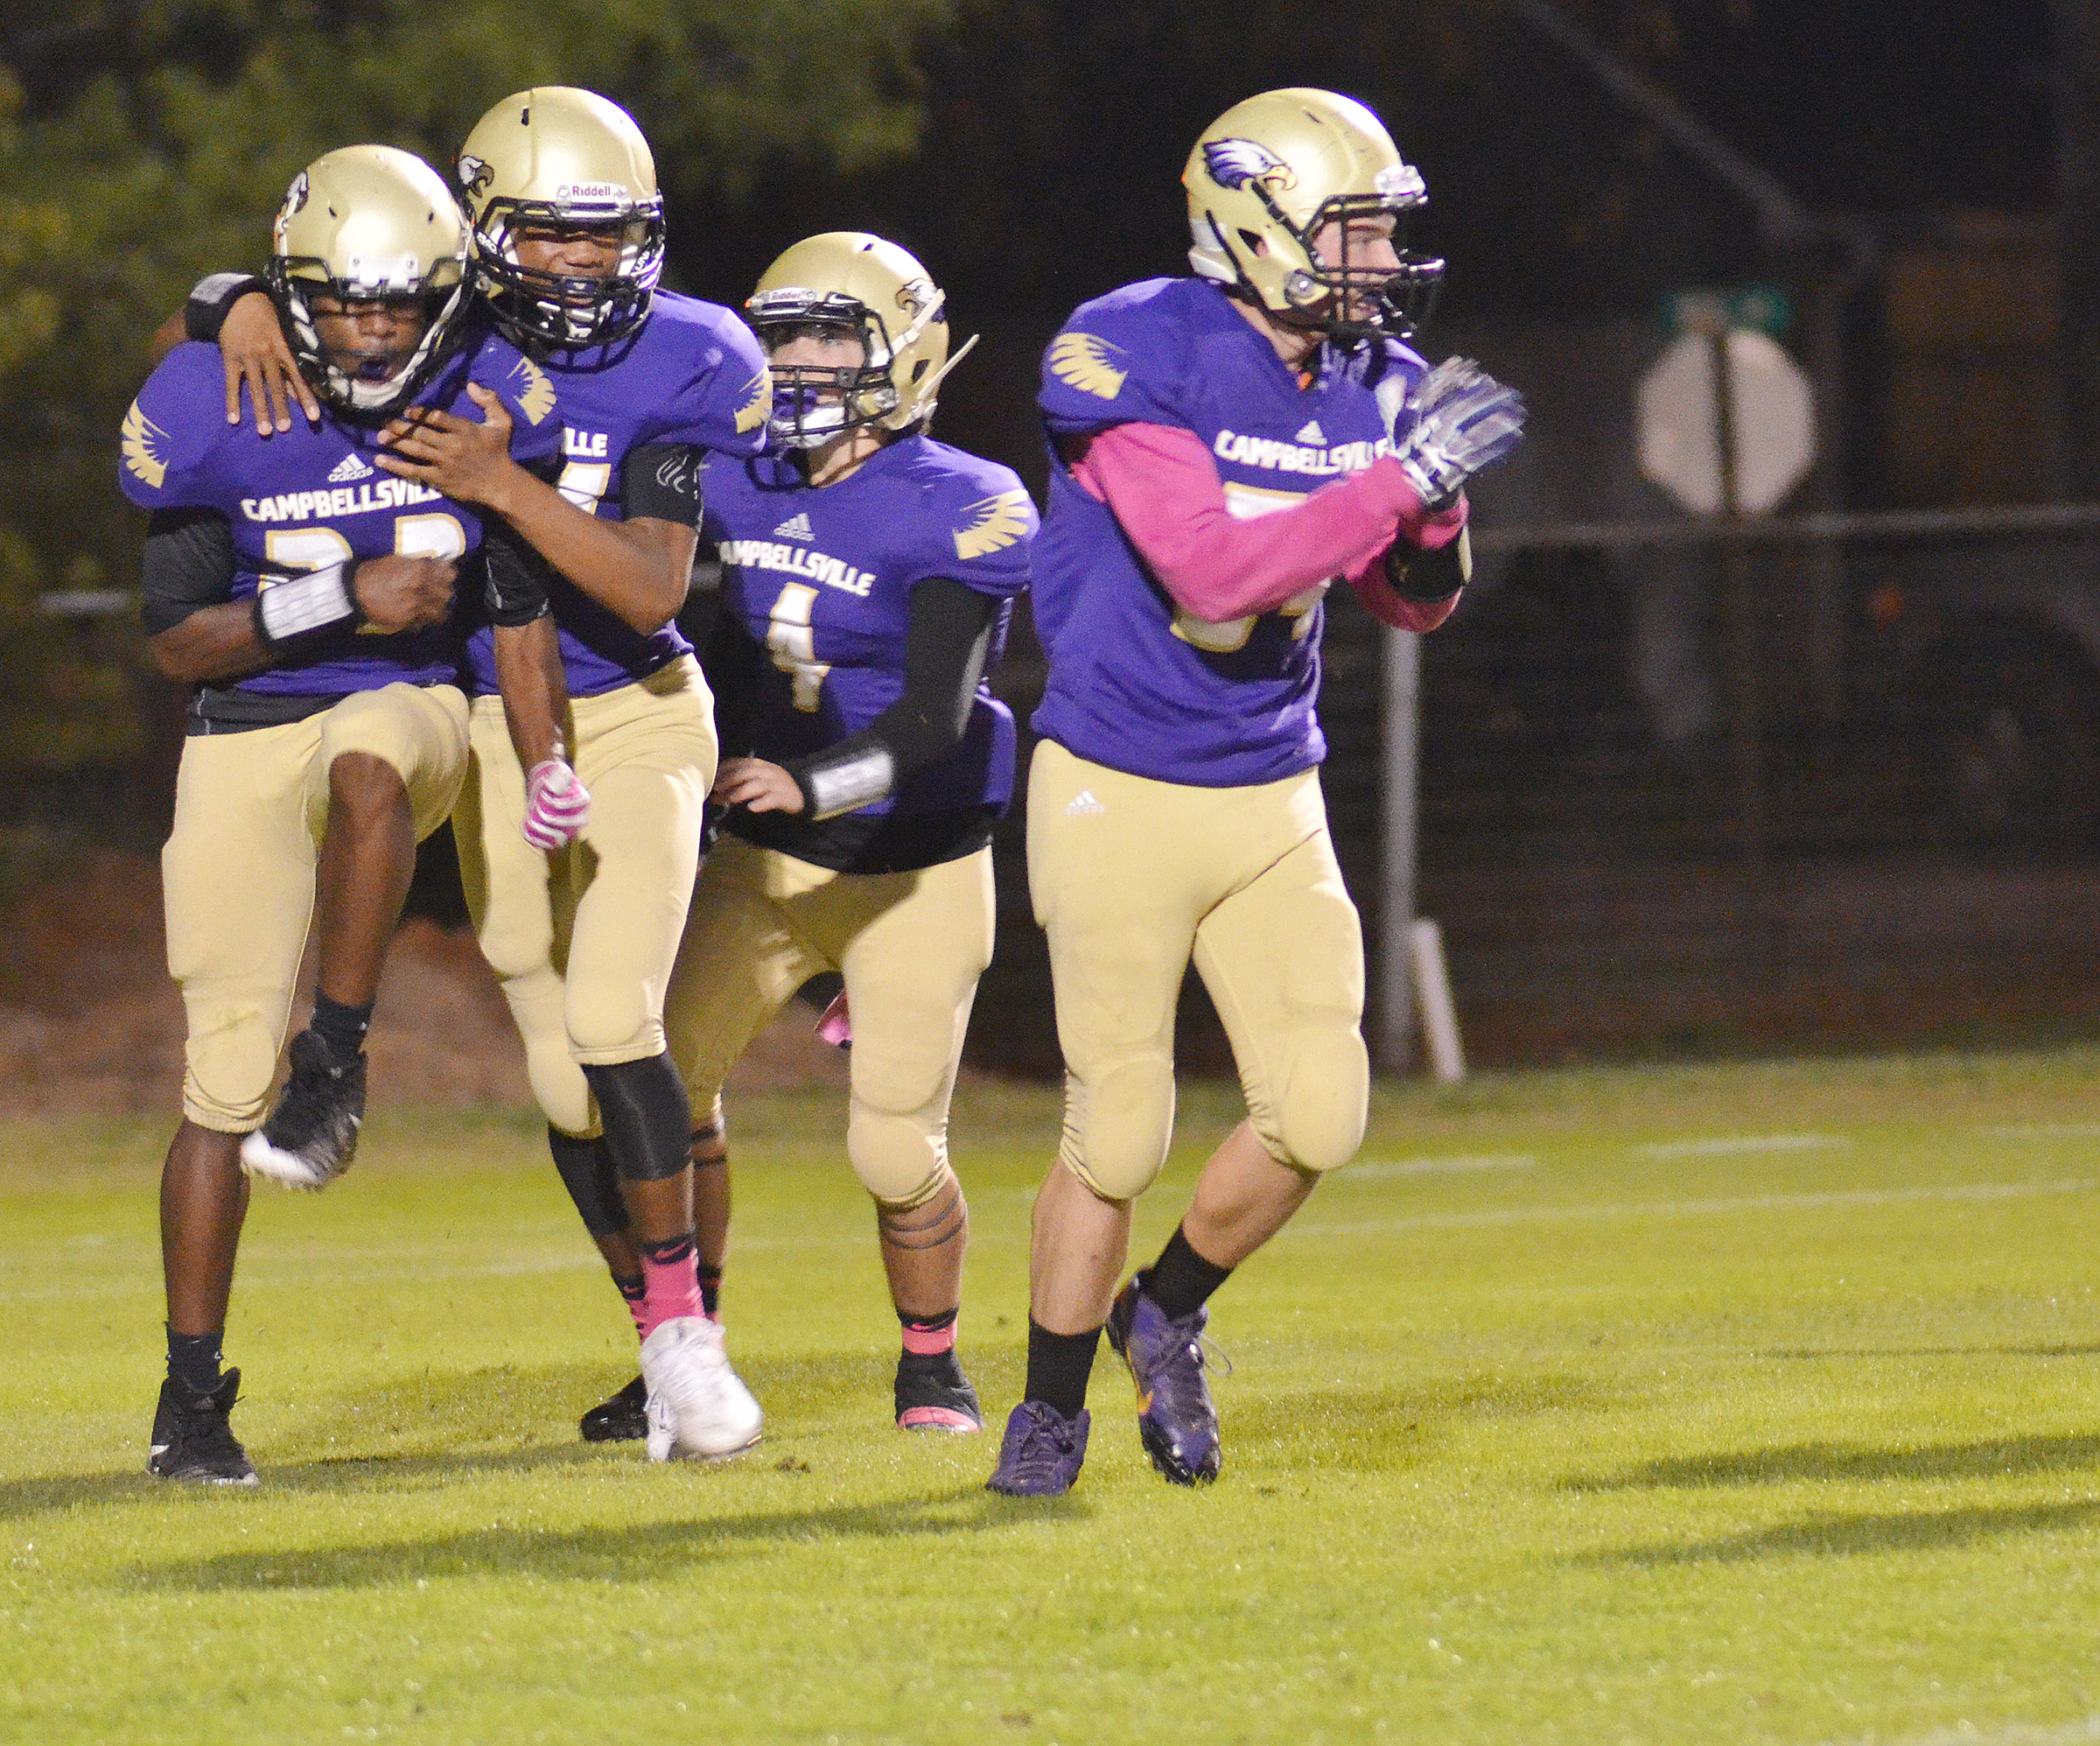 CHS football players celebrate a touchdown.